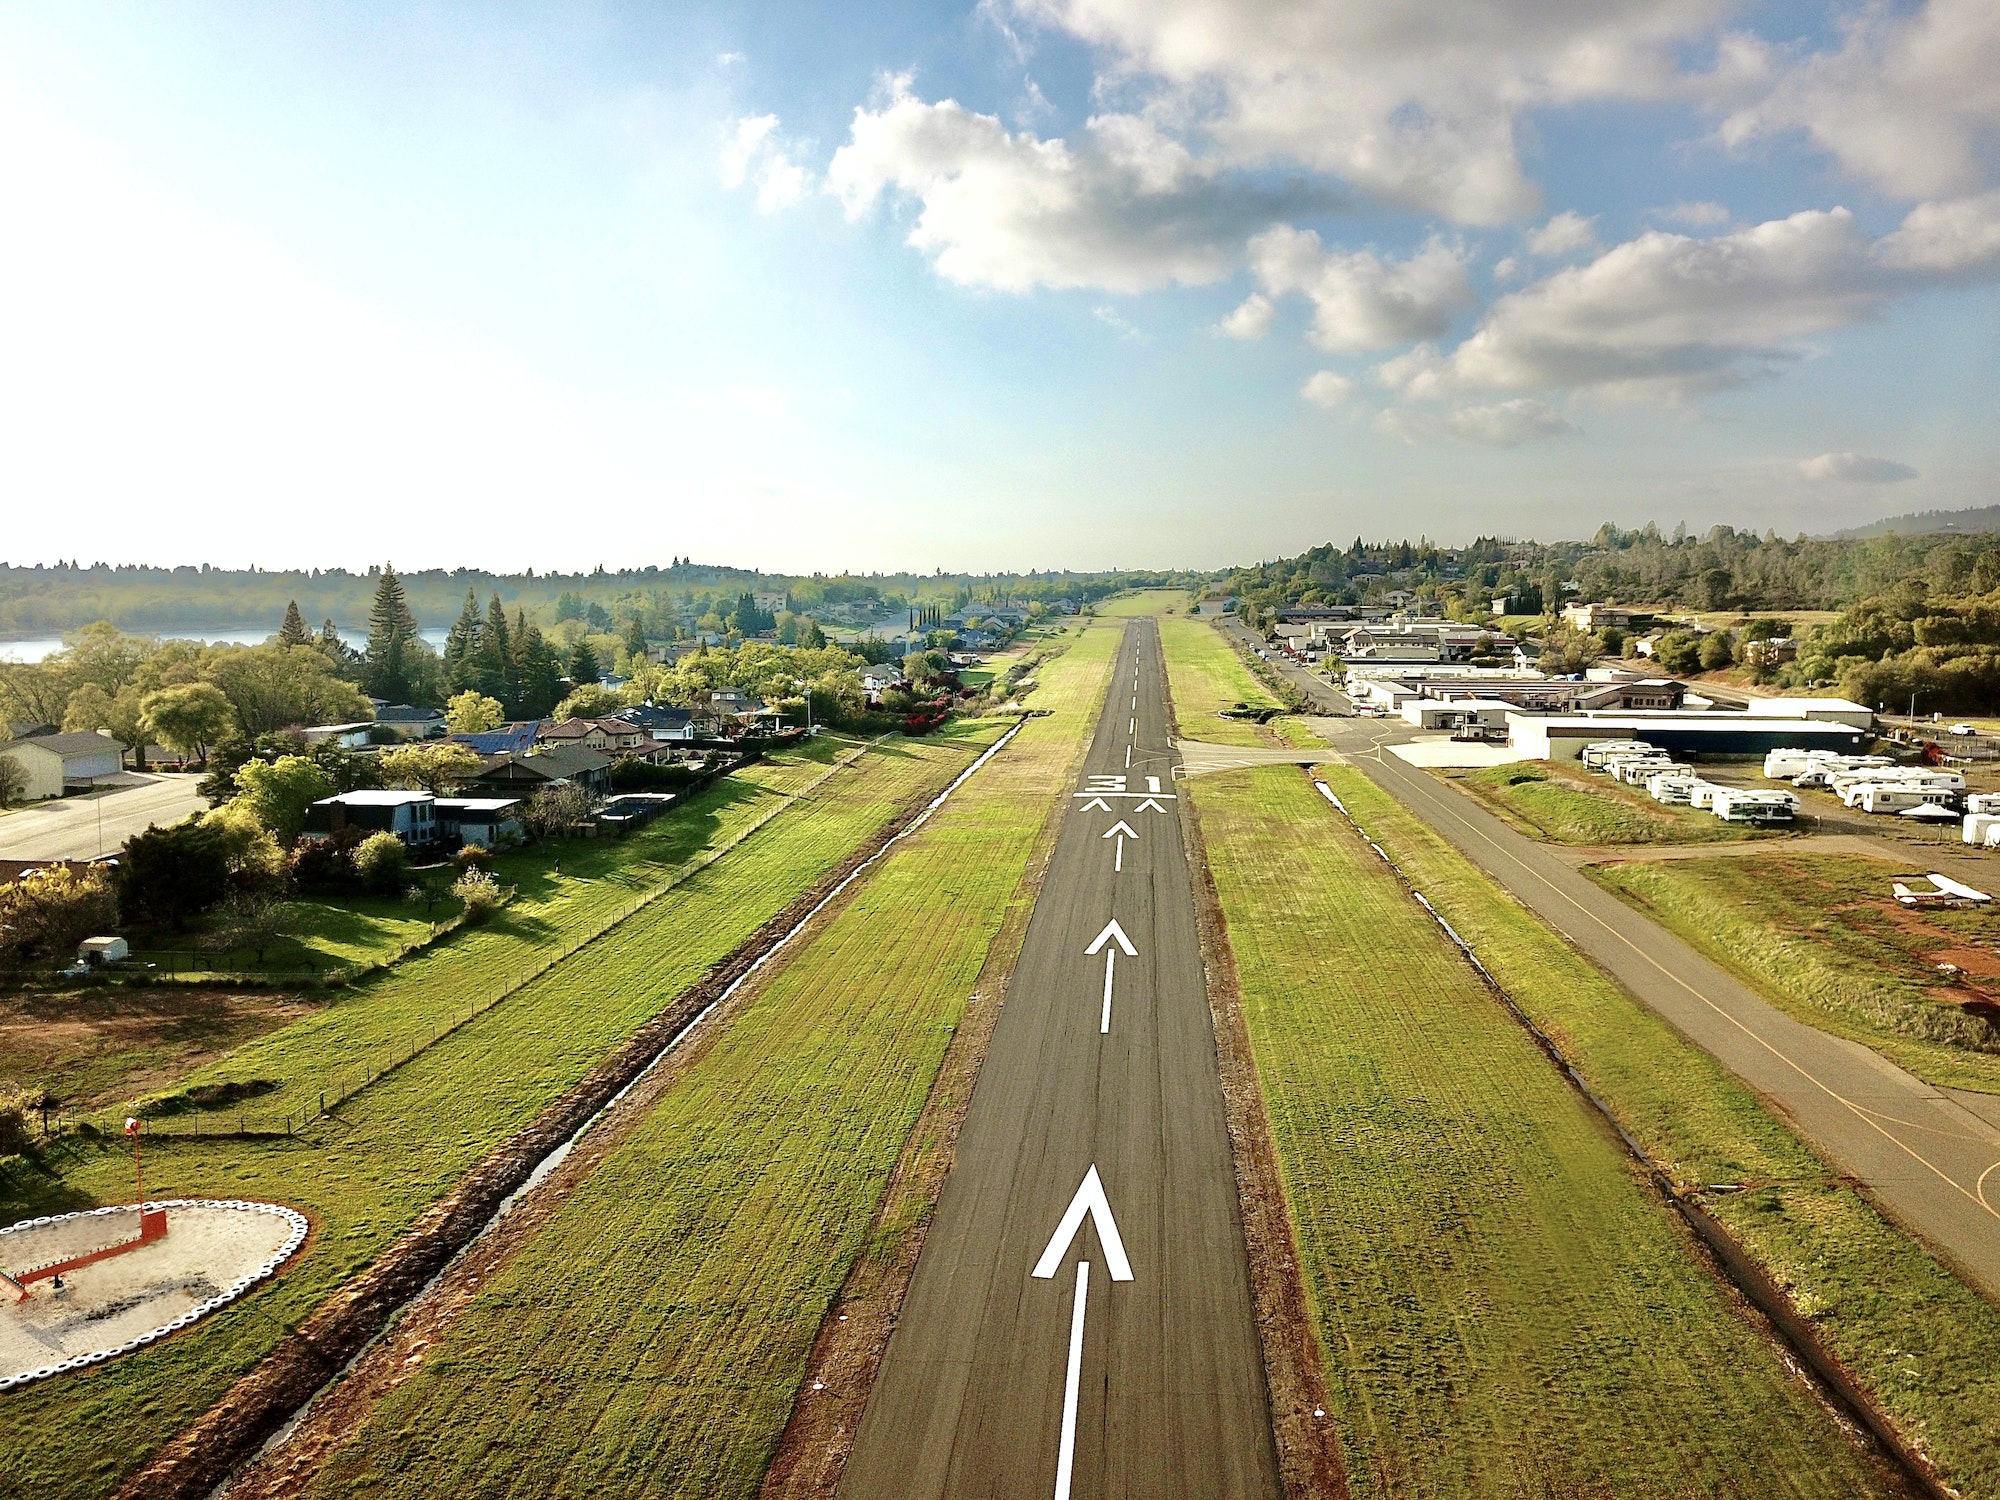 View of runway surrounded by lush grass on a sunny day